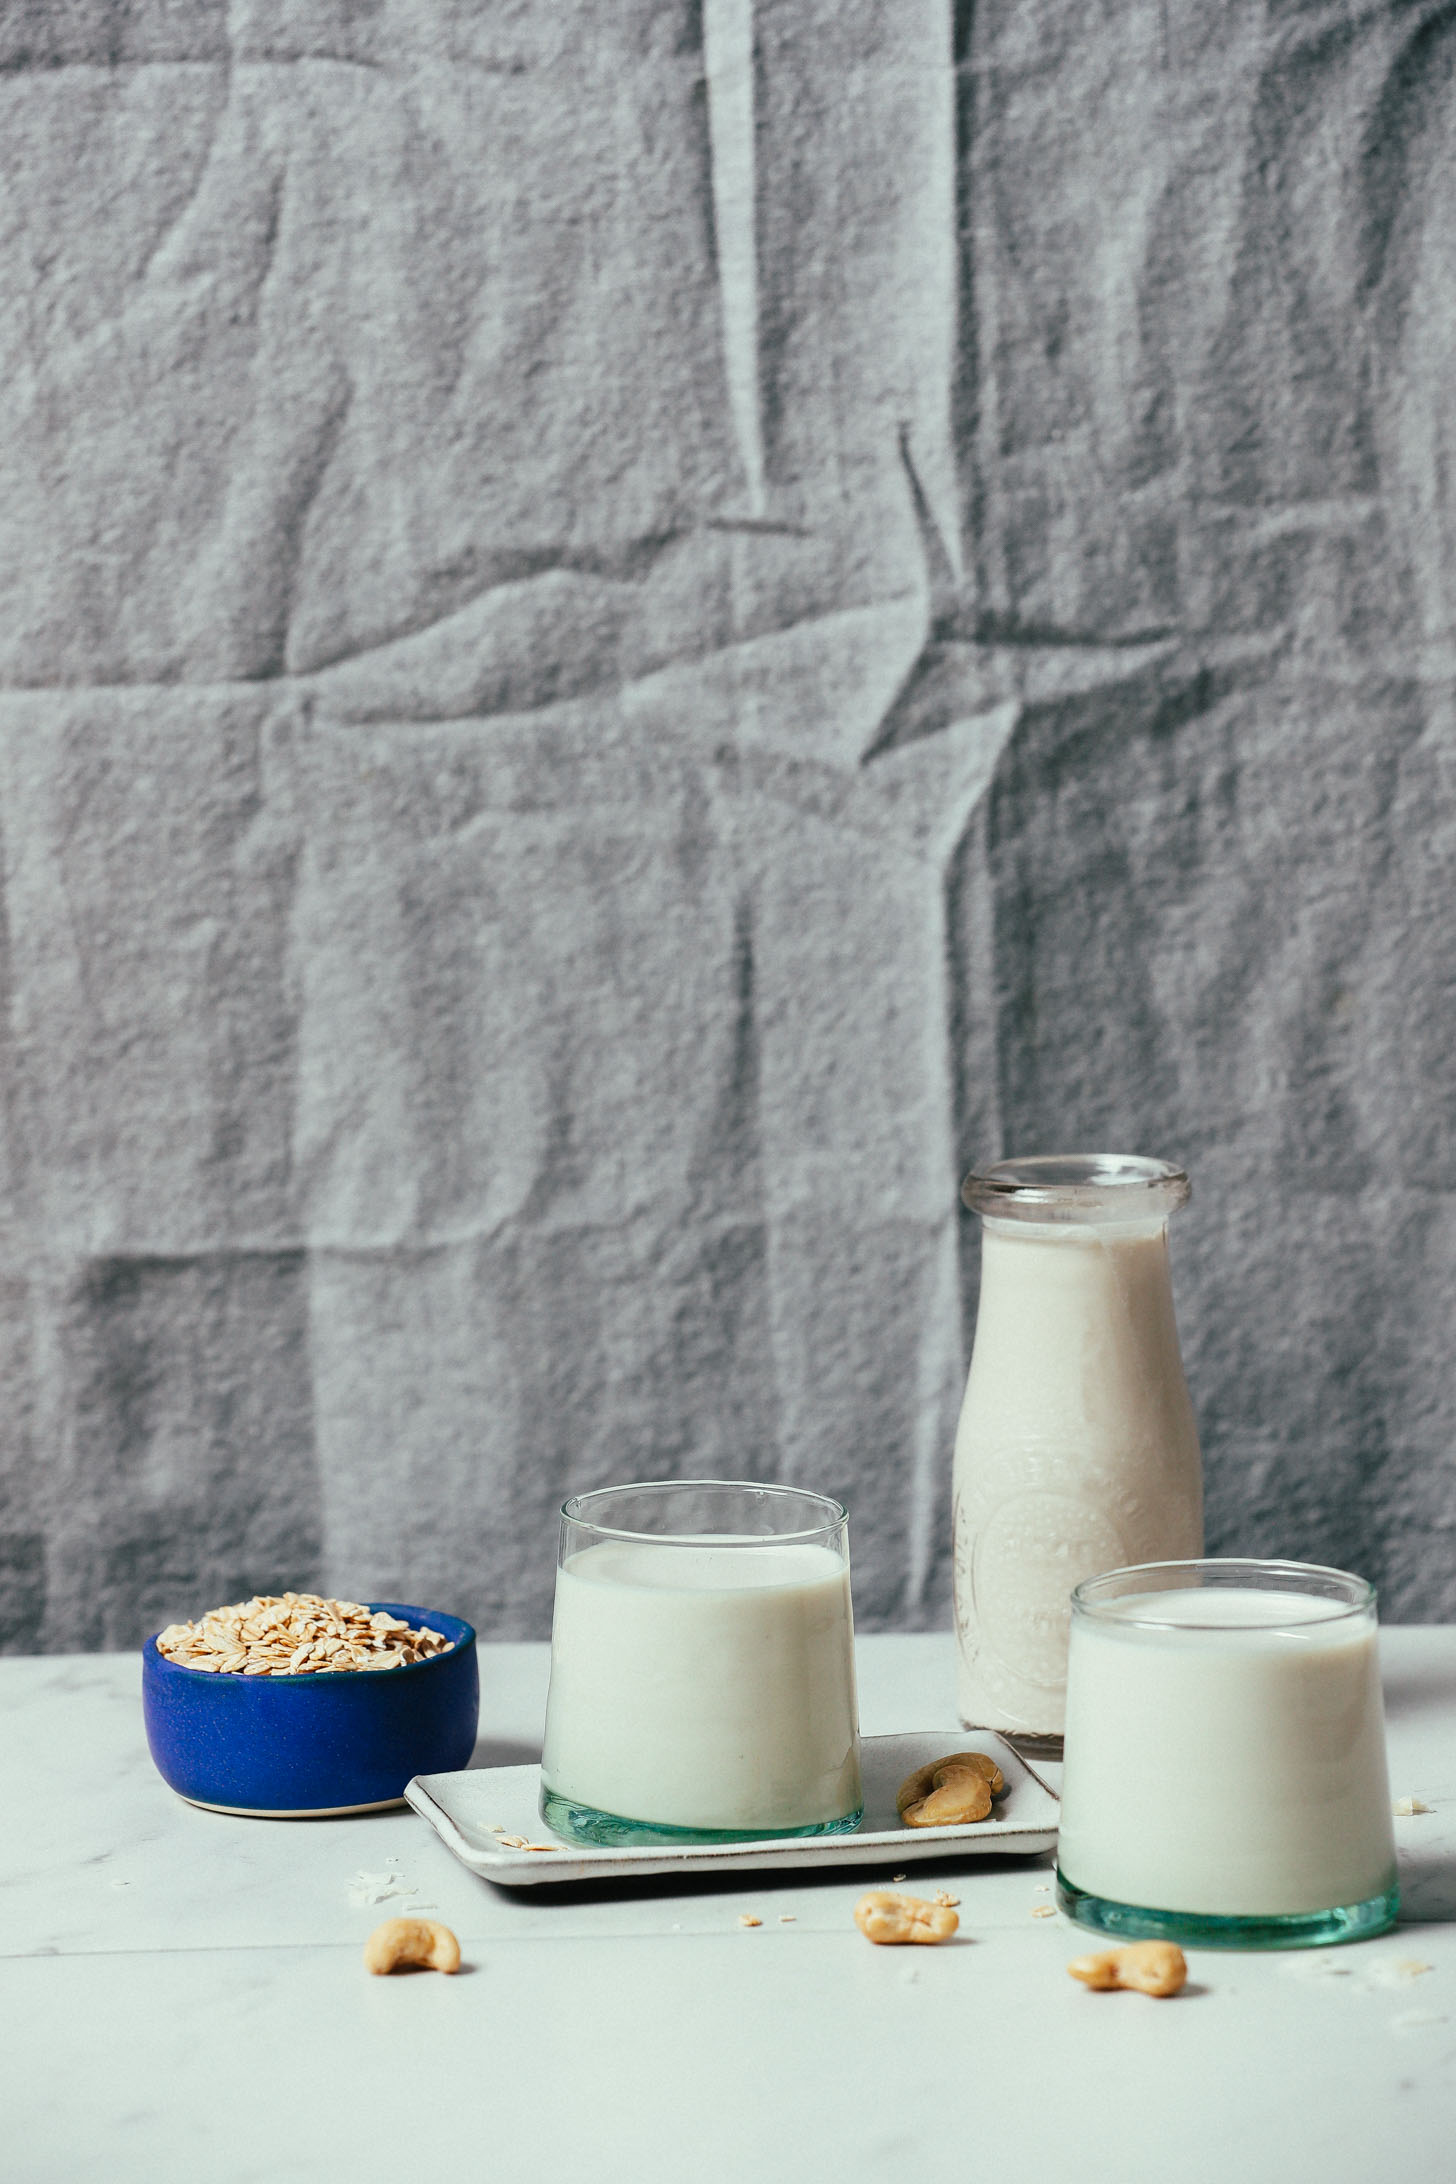 Glasses of homemade Cashew Oat Coconut Milk Creamer surrounded by ingredients use to make it